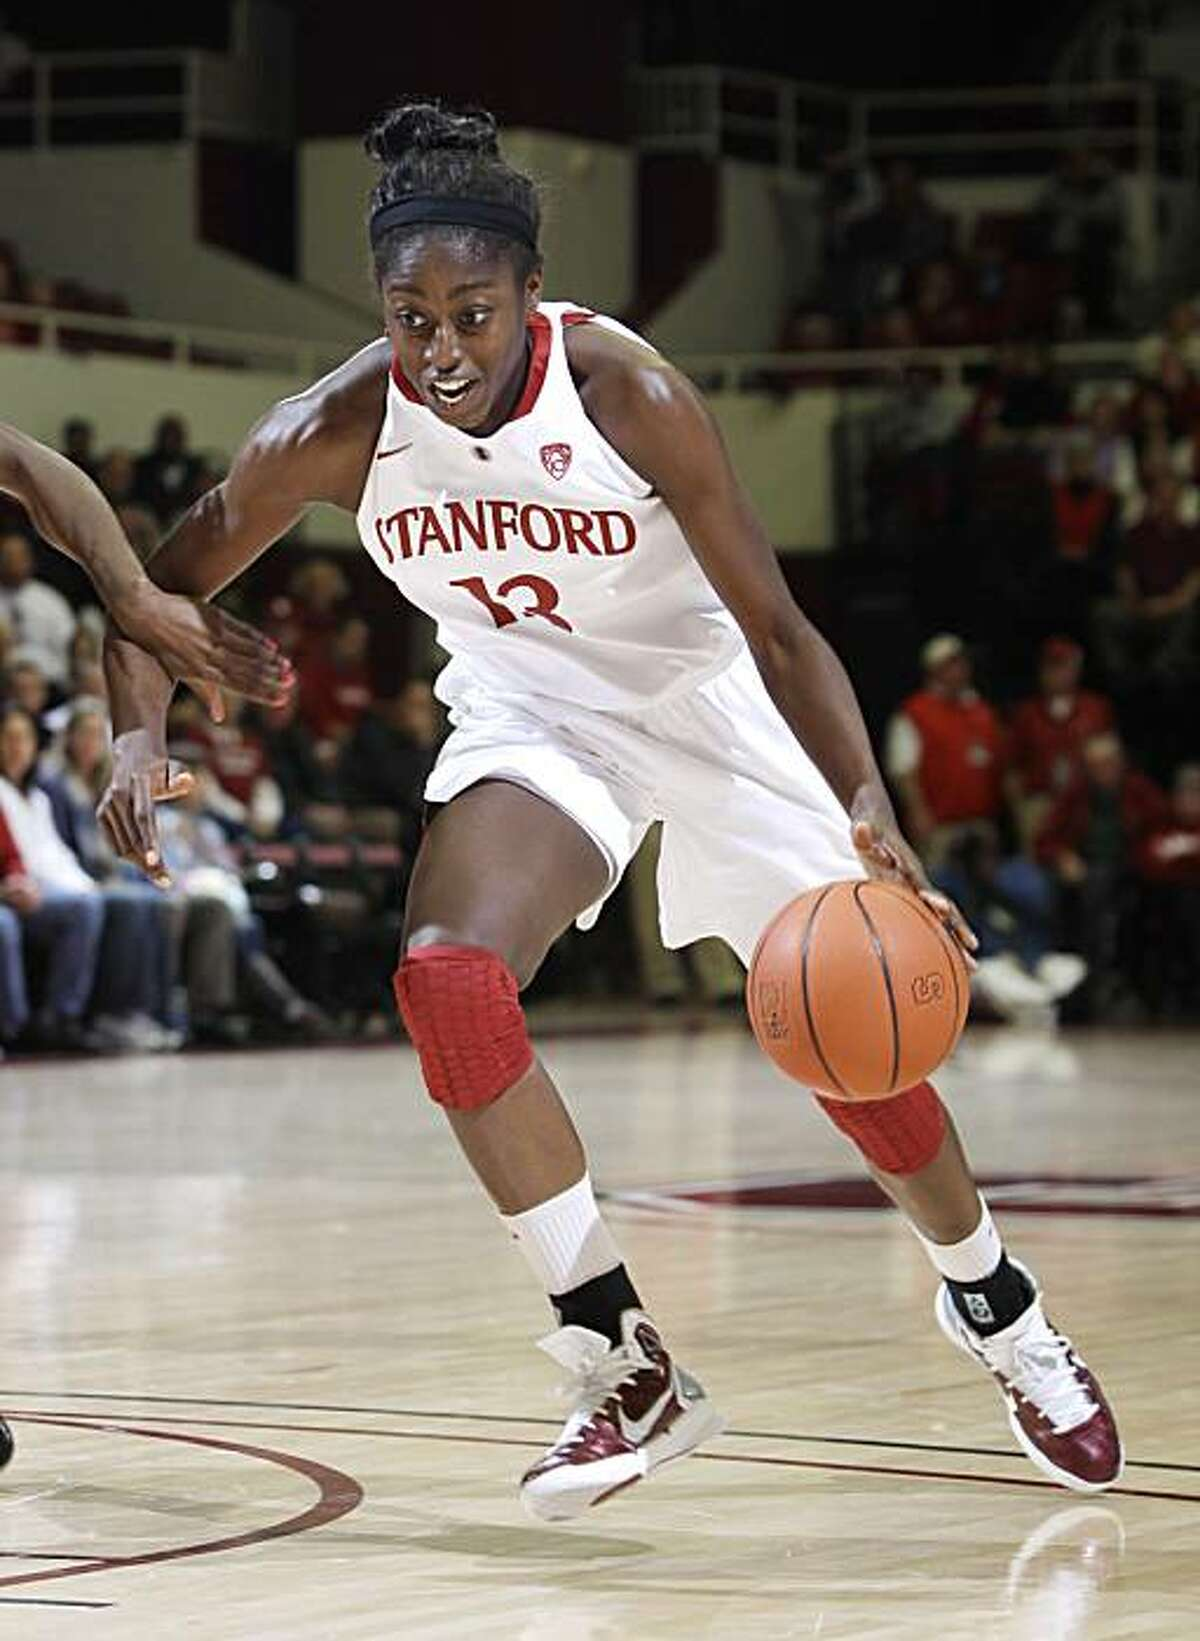 Stanford forward Chiney Ogwumike (13) drives to the basket against Arizona in the first half of an NCAA college basketball game in Stanford, Calif., Thursday, Jan. 6, 2011.